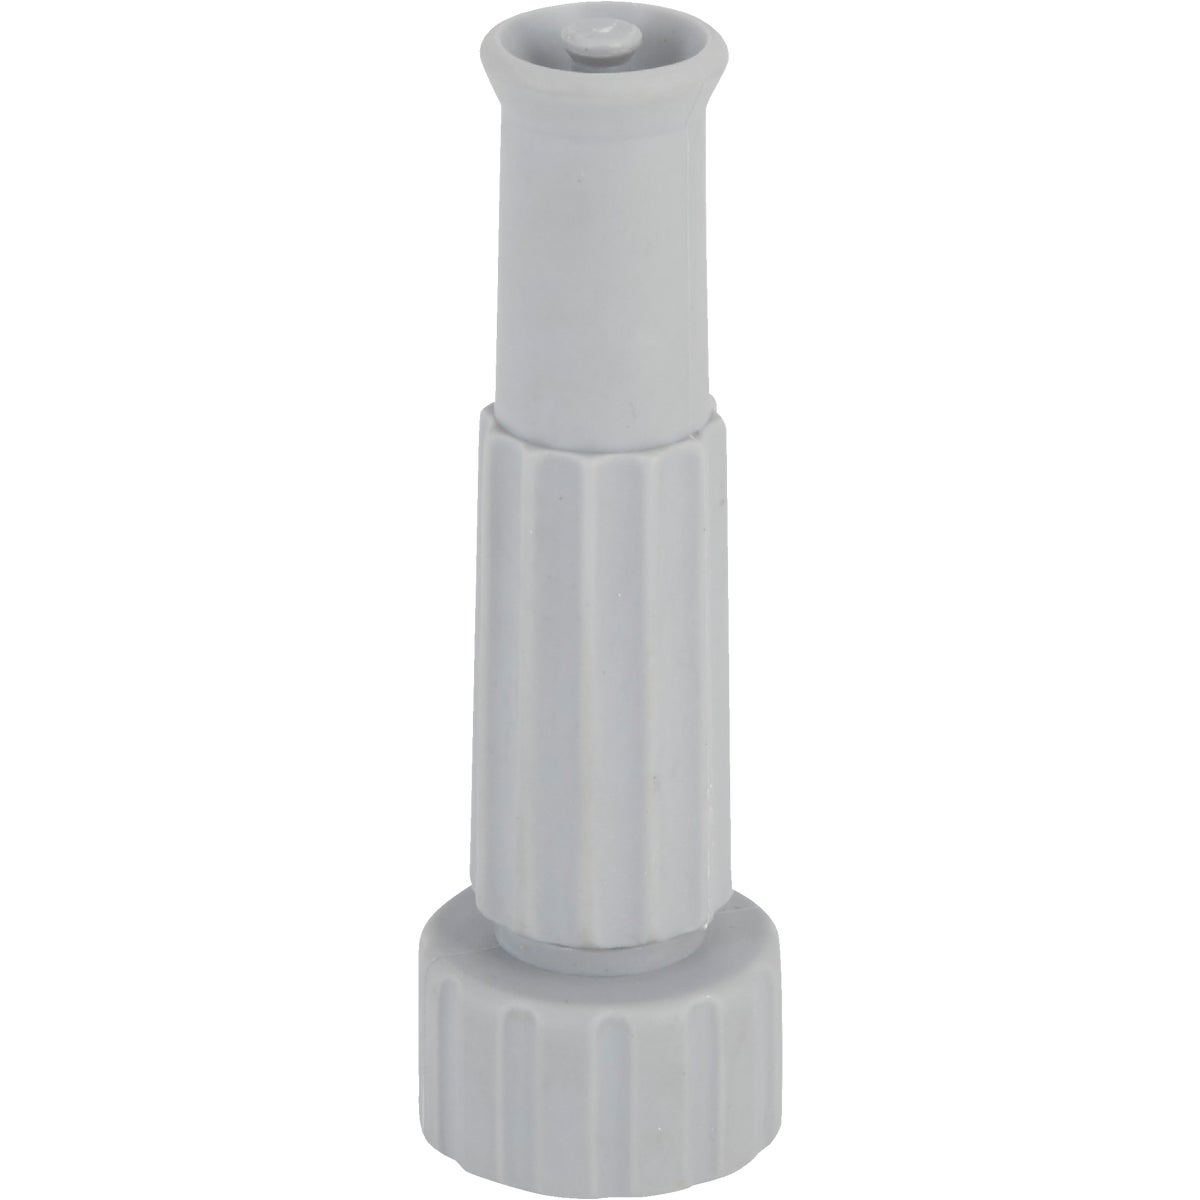 POLY TWIST NOZZLE - DIT428 by Bosch G W Gs